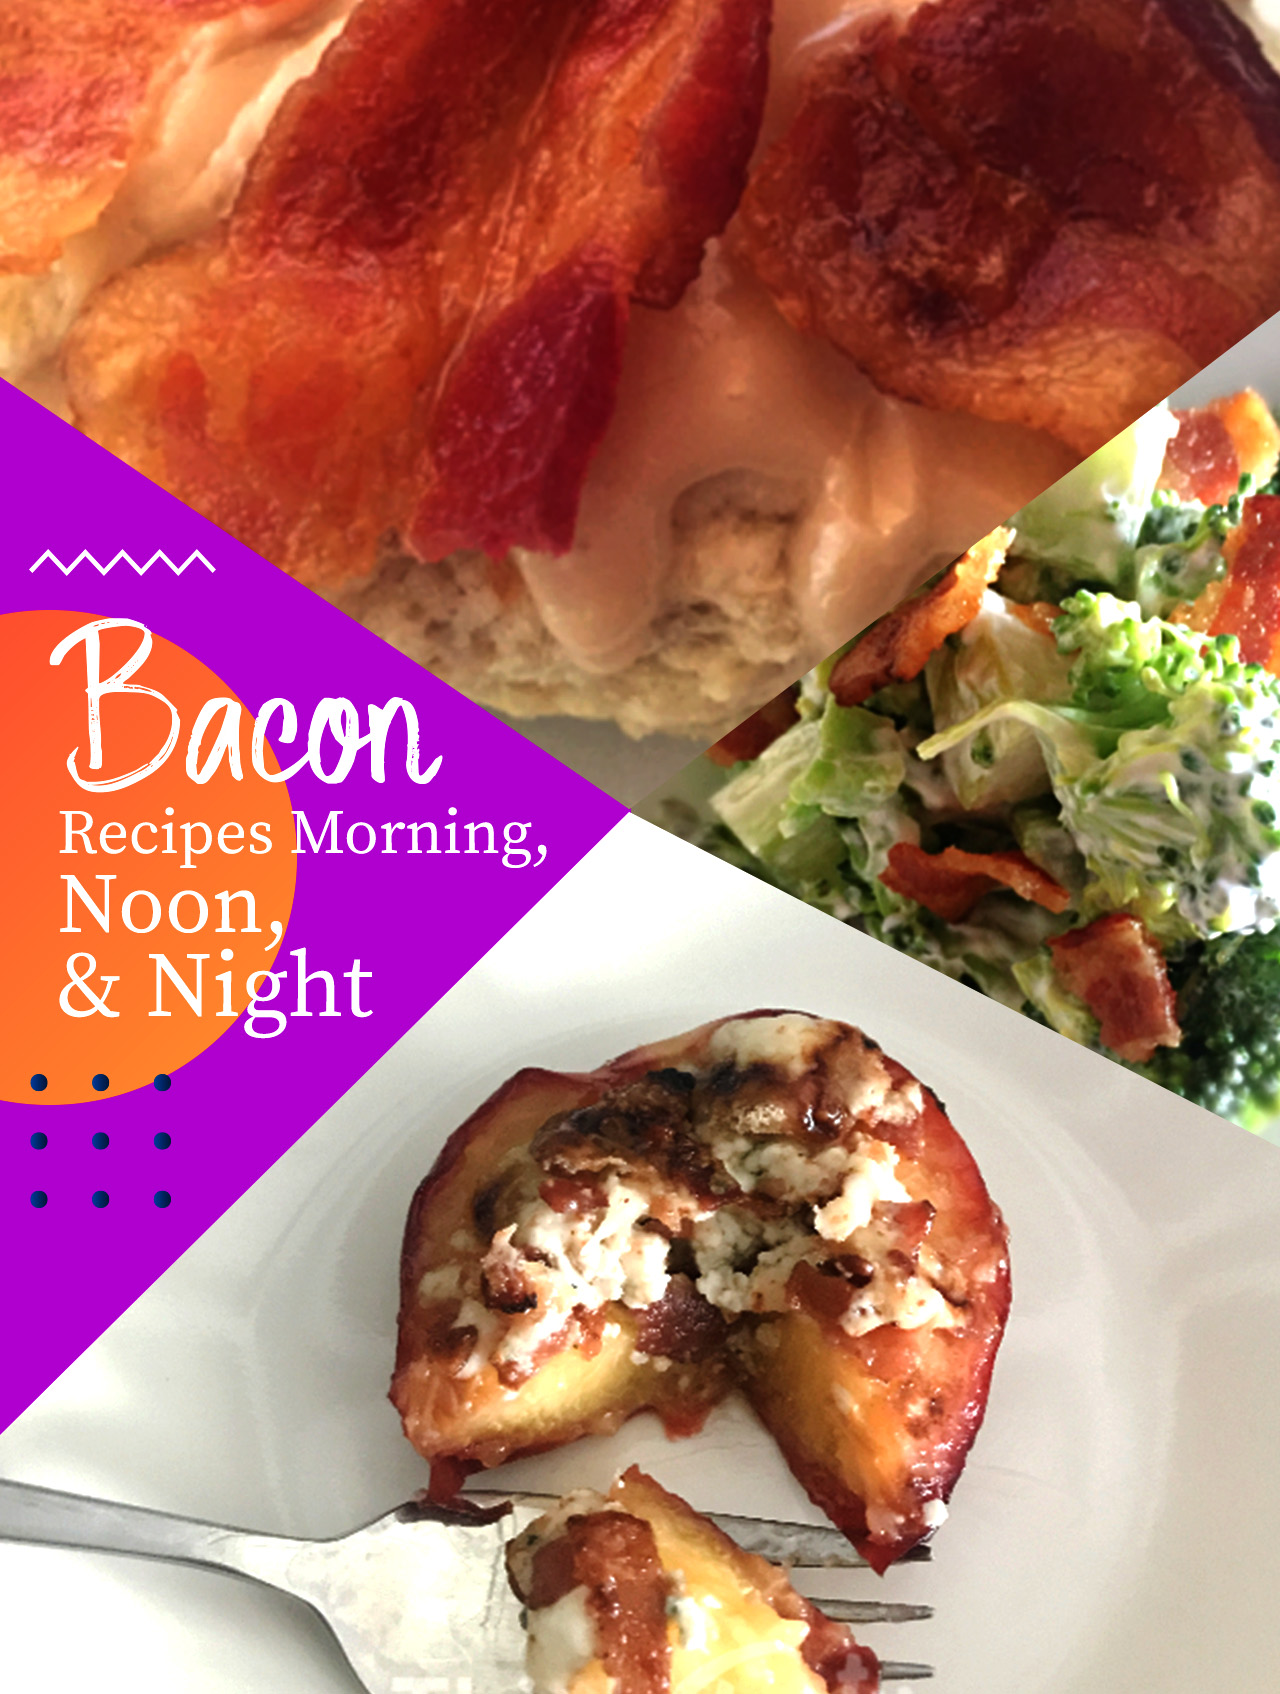 bacon dishes for all day long